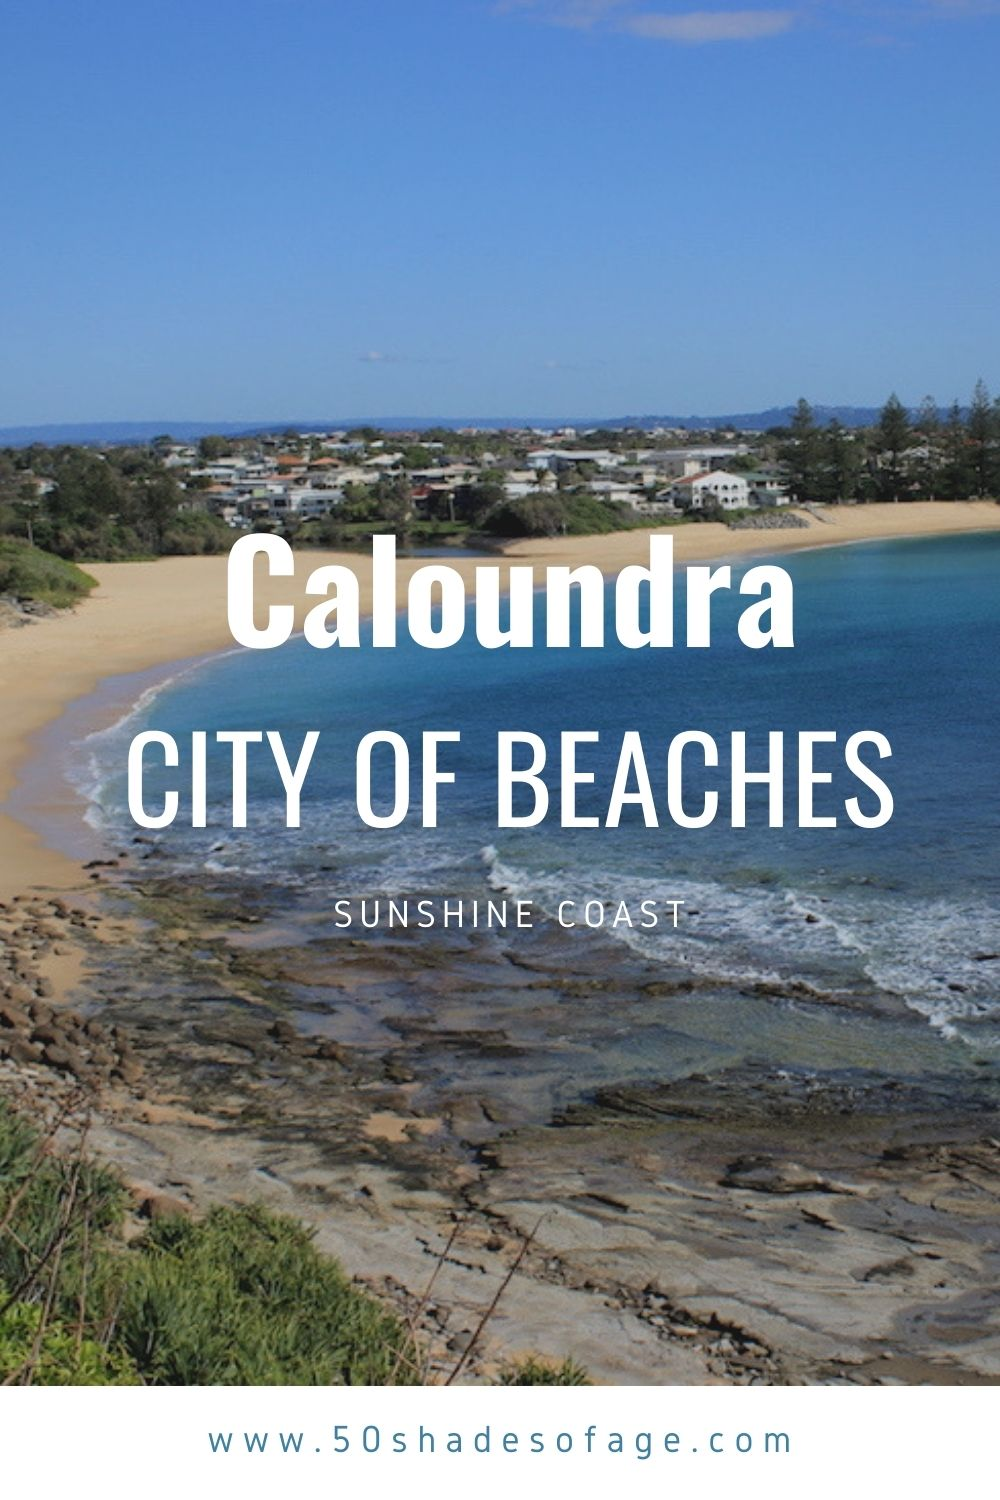 Caloundra:City of Beaches